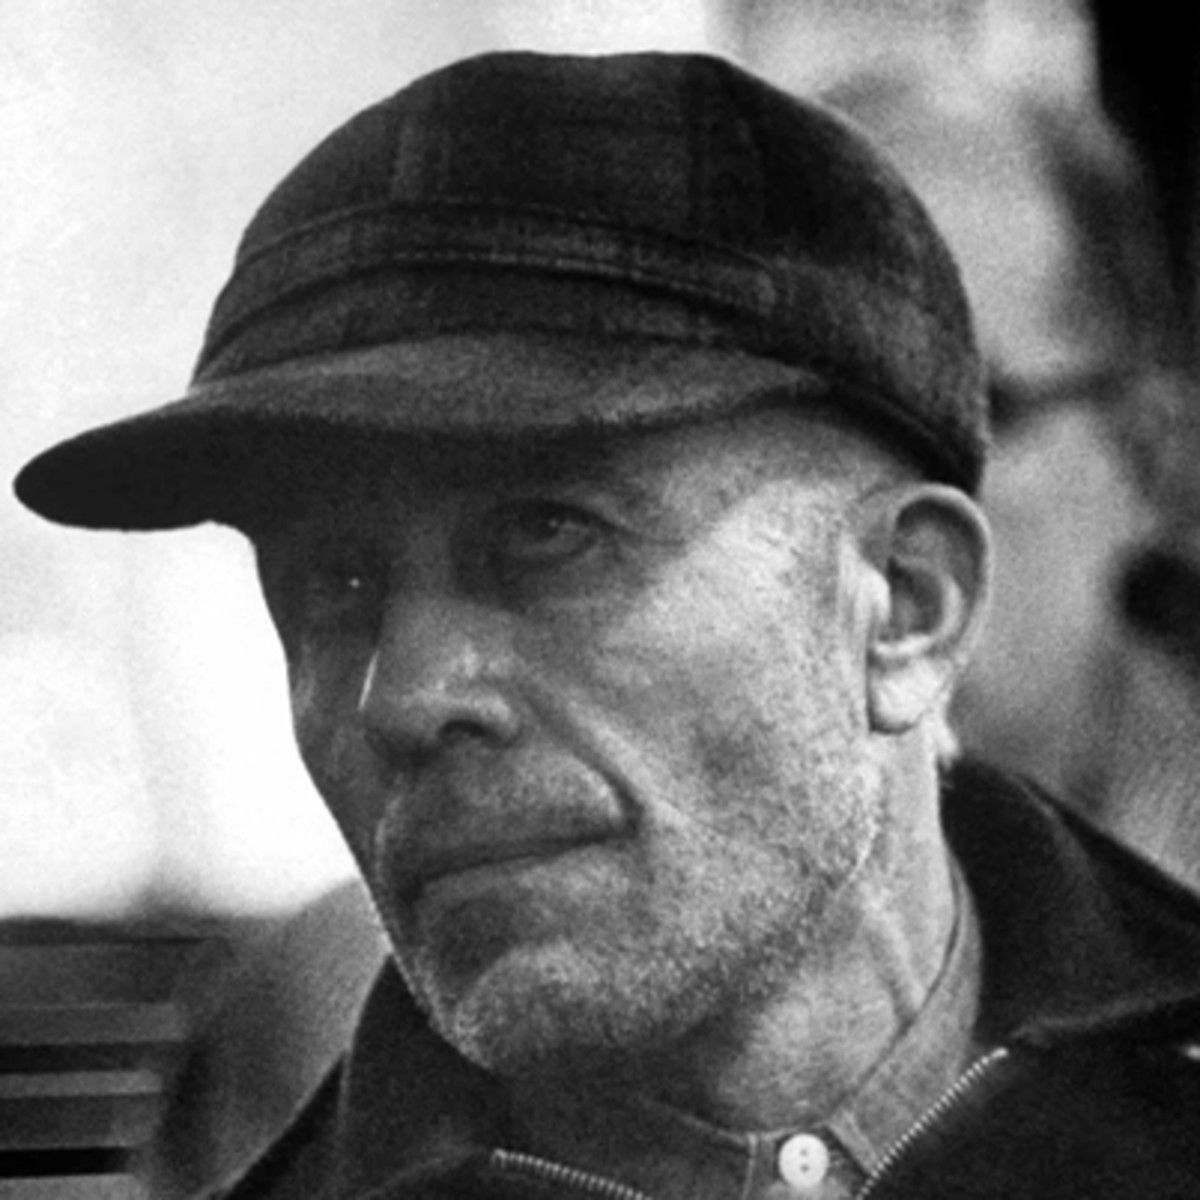 Ed Gein Was A Notorious Killer And Grave Robber He Inspired The Creation Of Several Film Characters Including Norman Bates Psycho Jame Gumb Serial Killers